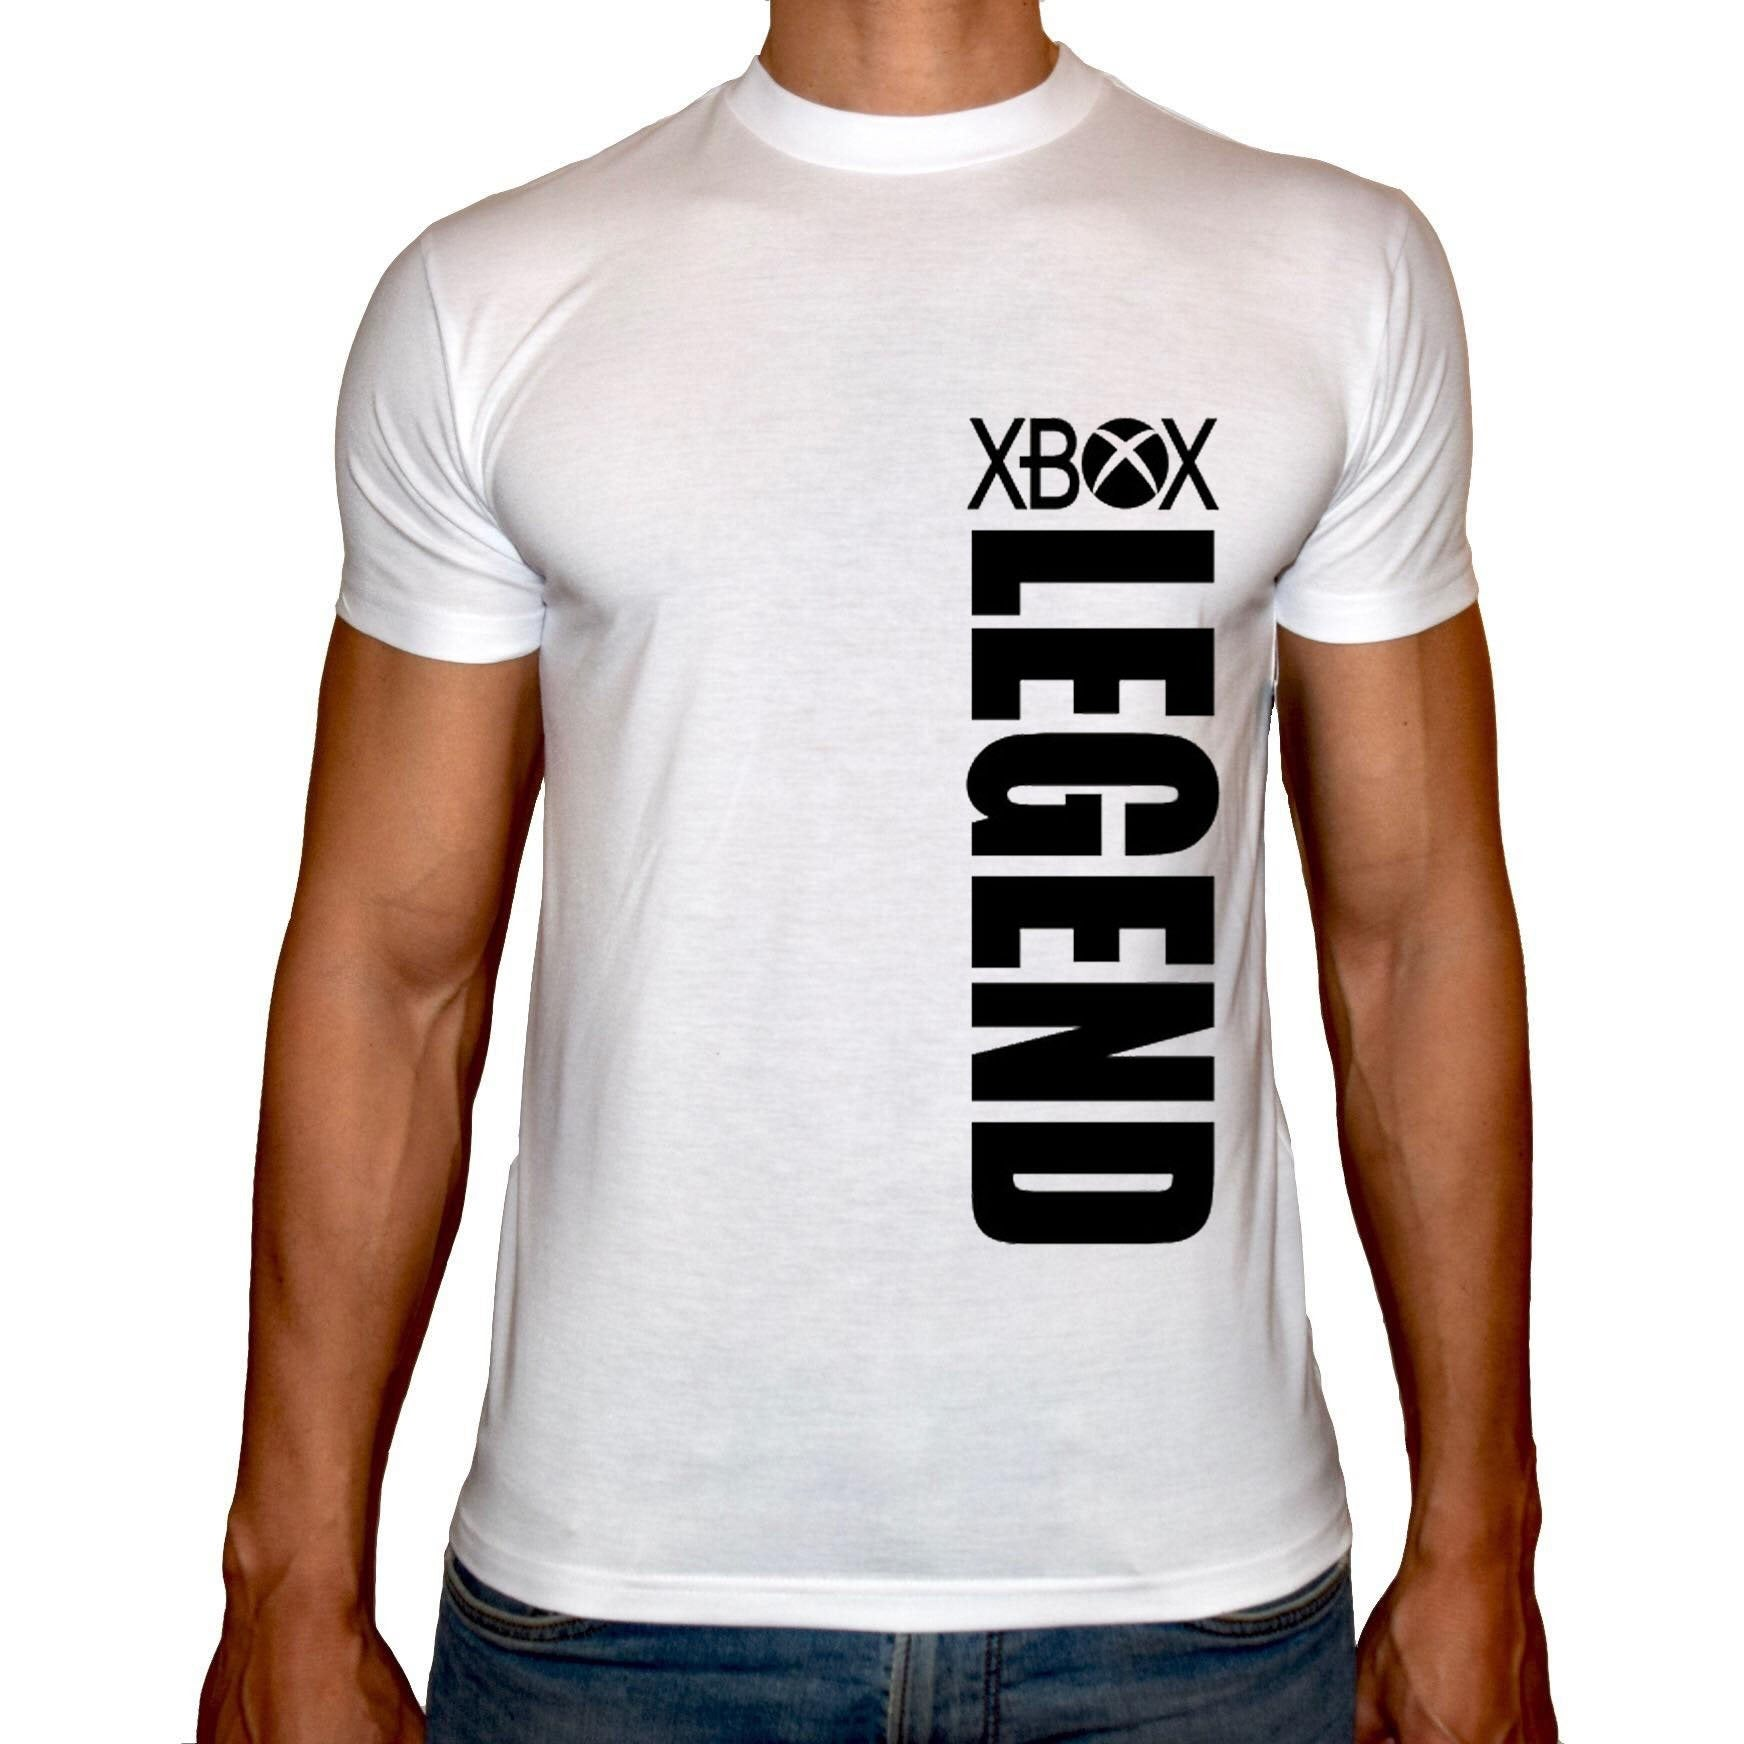 Phoenix WHITE Round Neck Printed Shirt Men (Xbox)